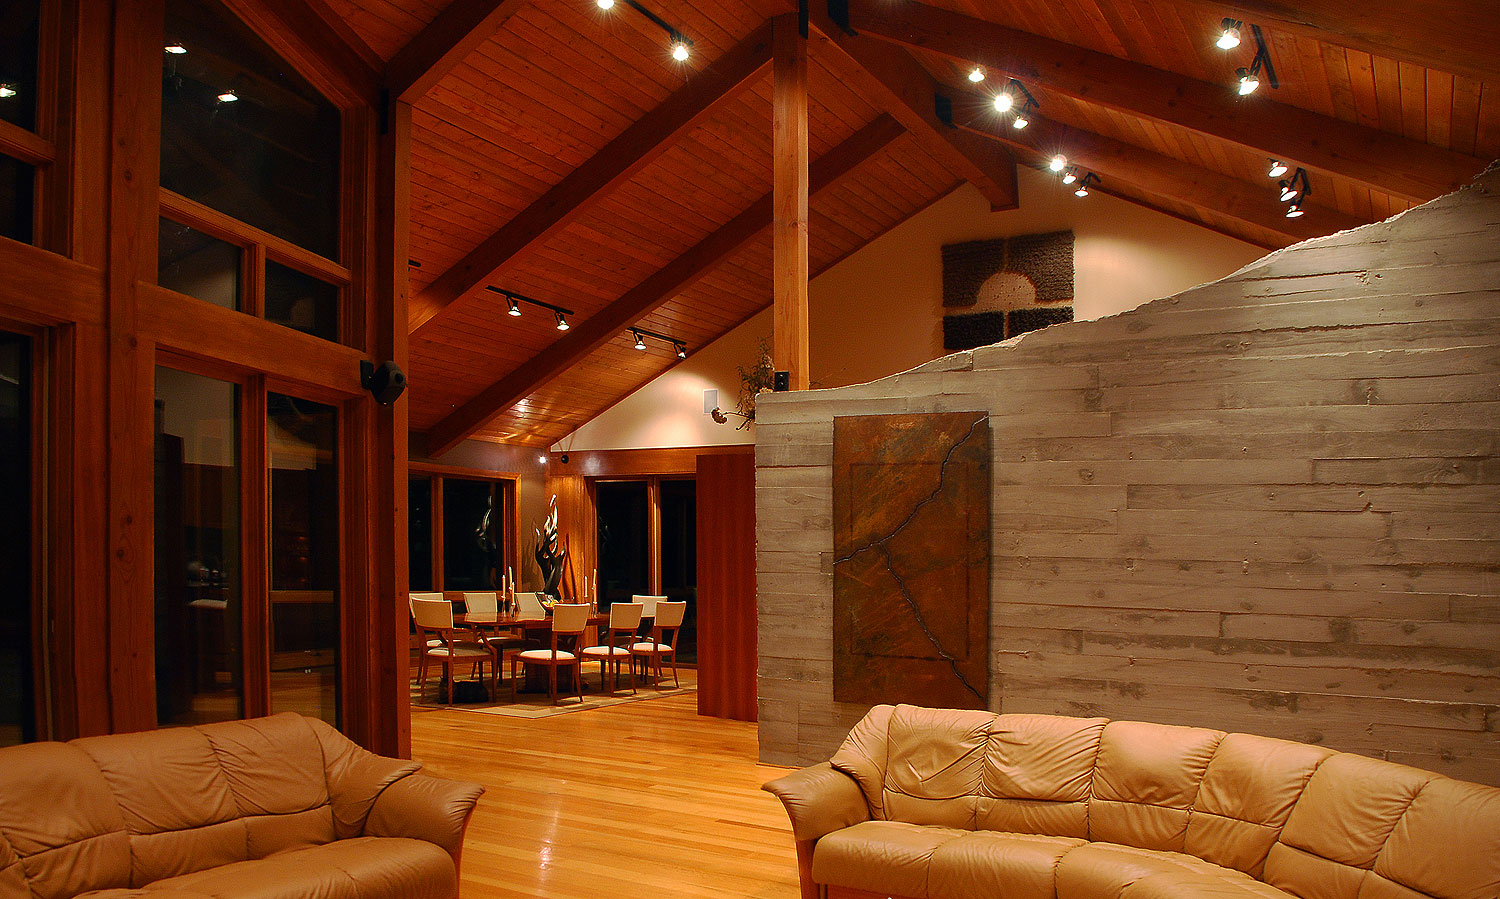 Living room / greatroom showcasing exposed concrete and cherry wood paneling in a custom designed home by Pavelchak Architecture in Valle Crucis, North Carolina, near Boone